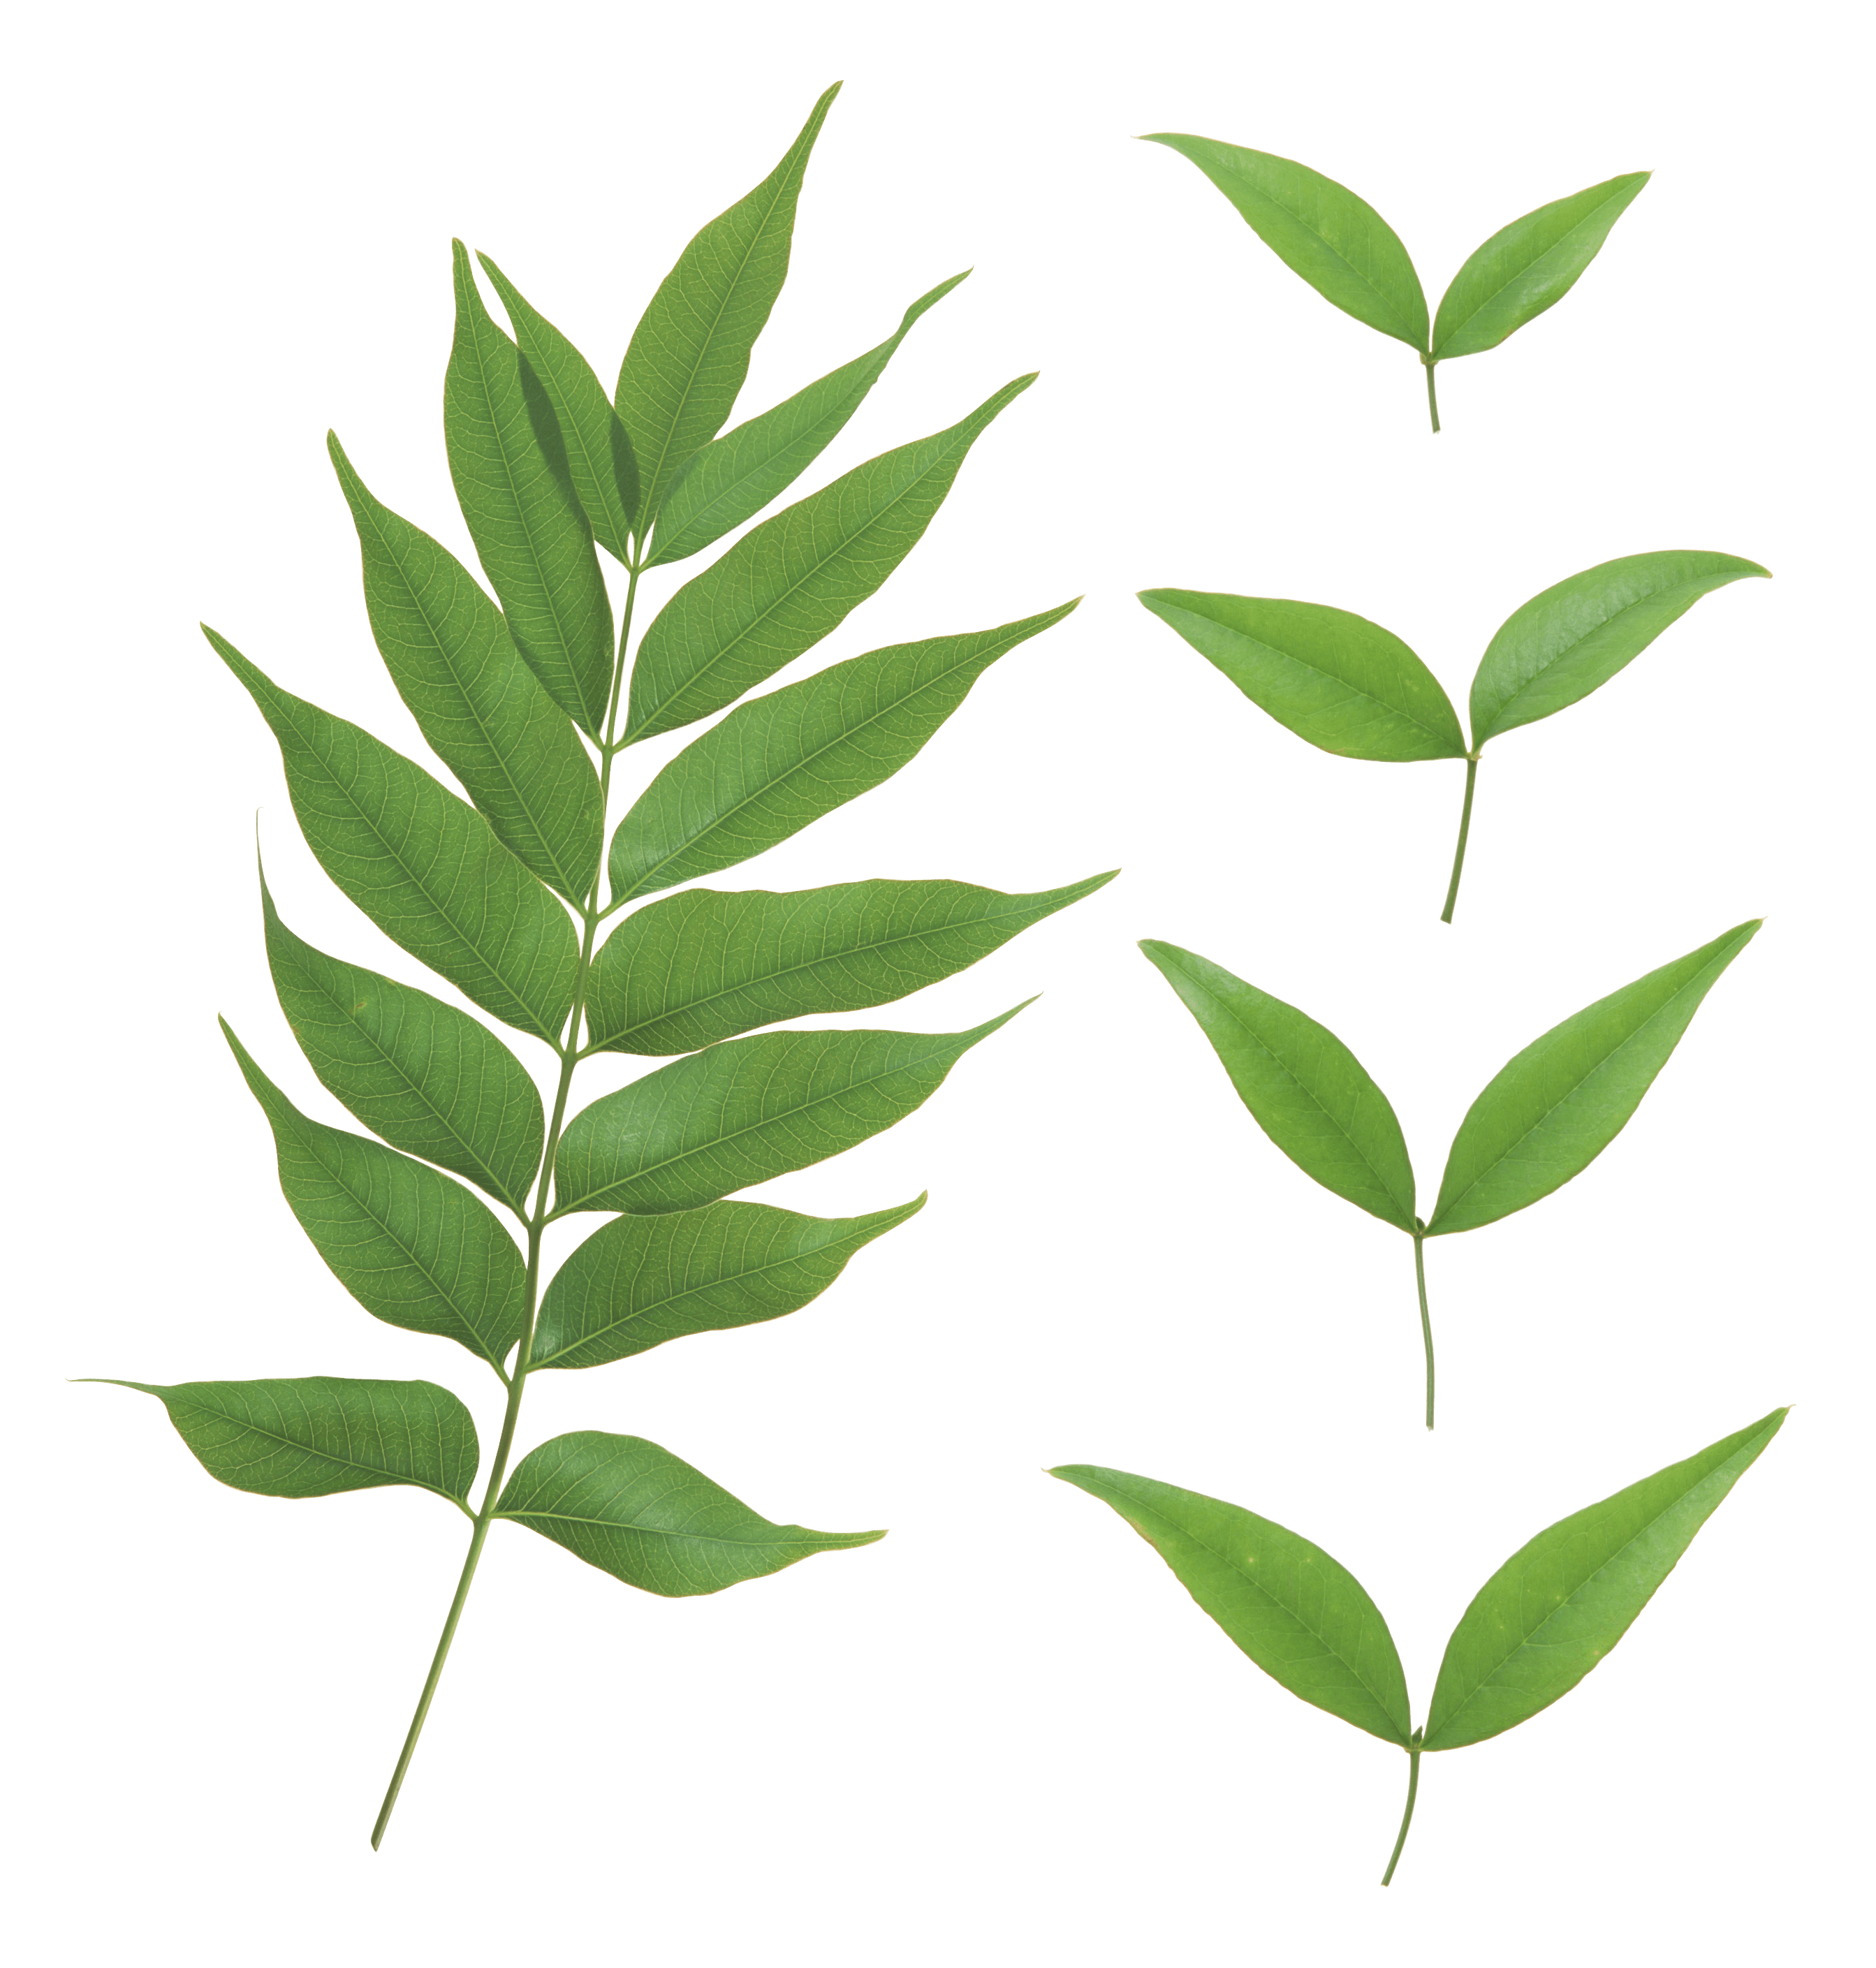 Green Leaf Png PNG Image - Leaves PNG